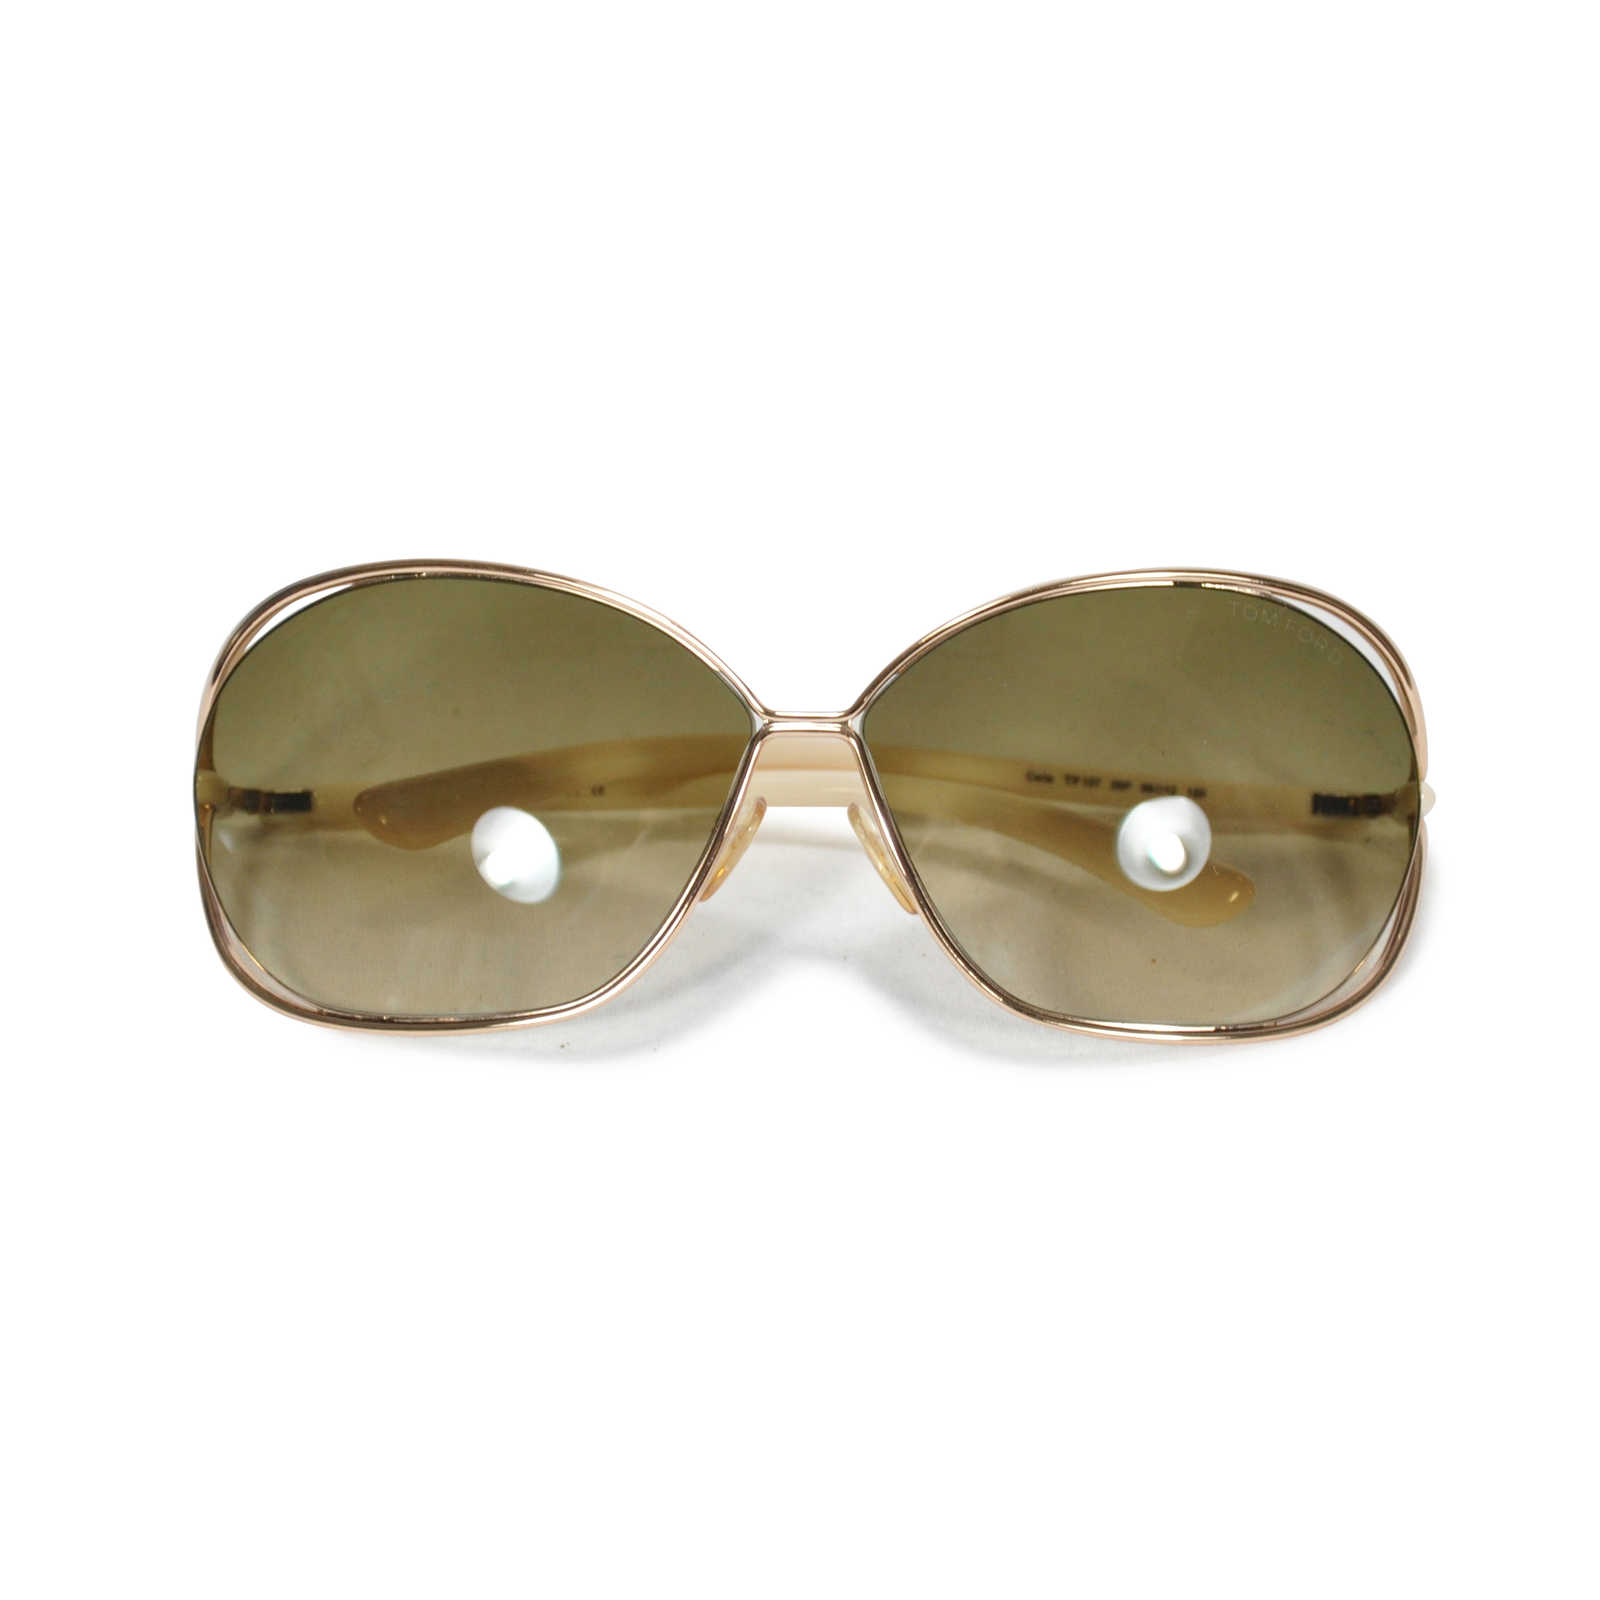 Authentic Hand Tom Ford Carla Sunglasses Pss-089